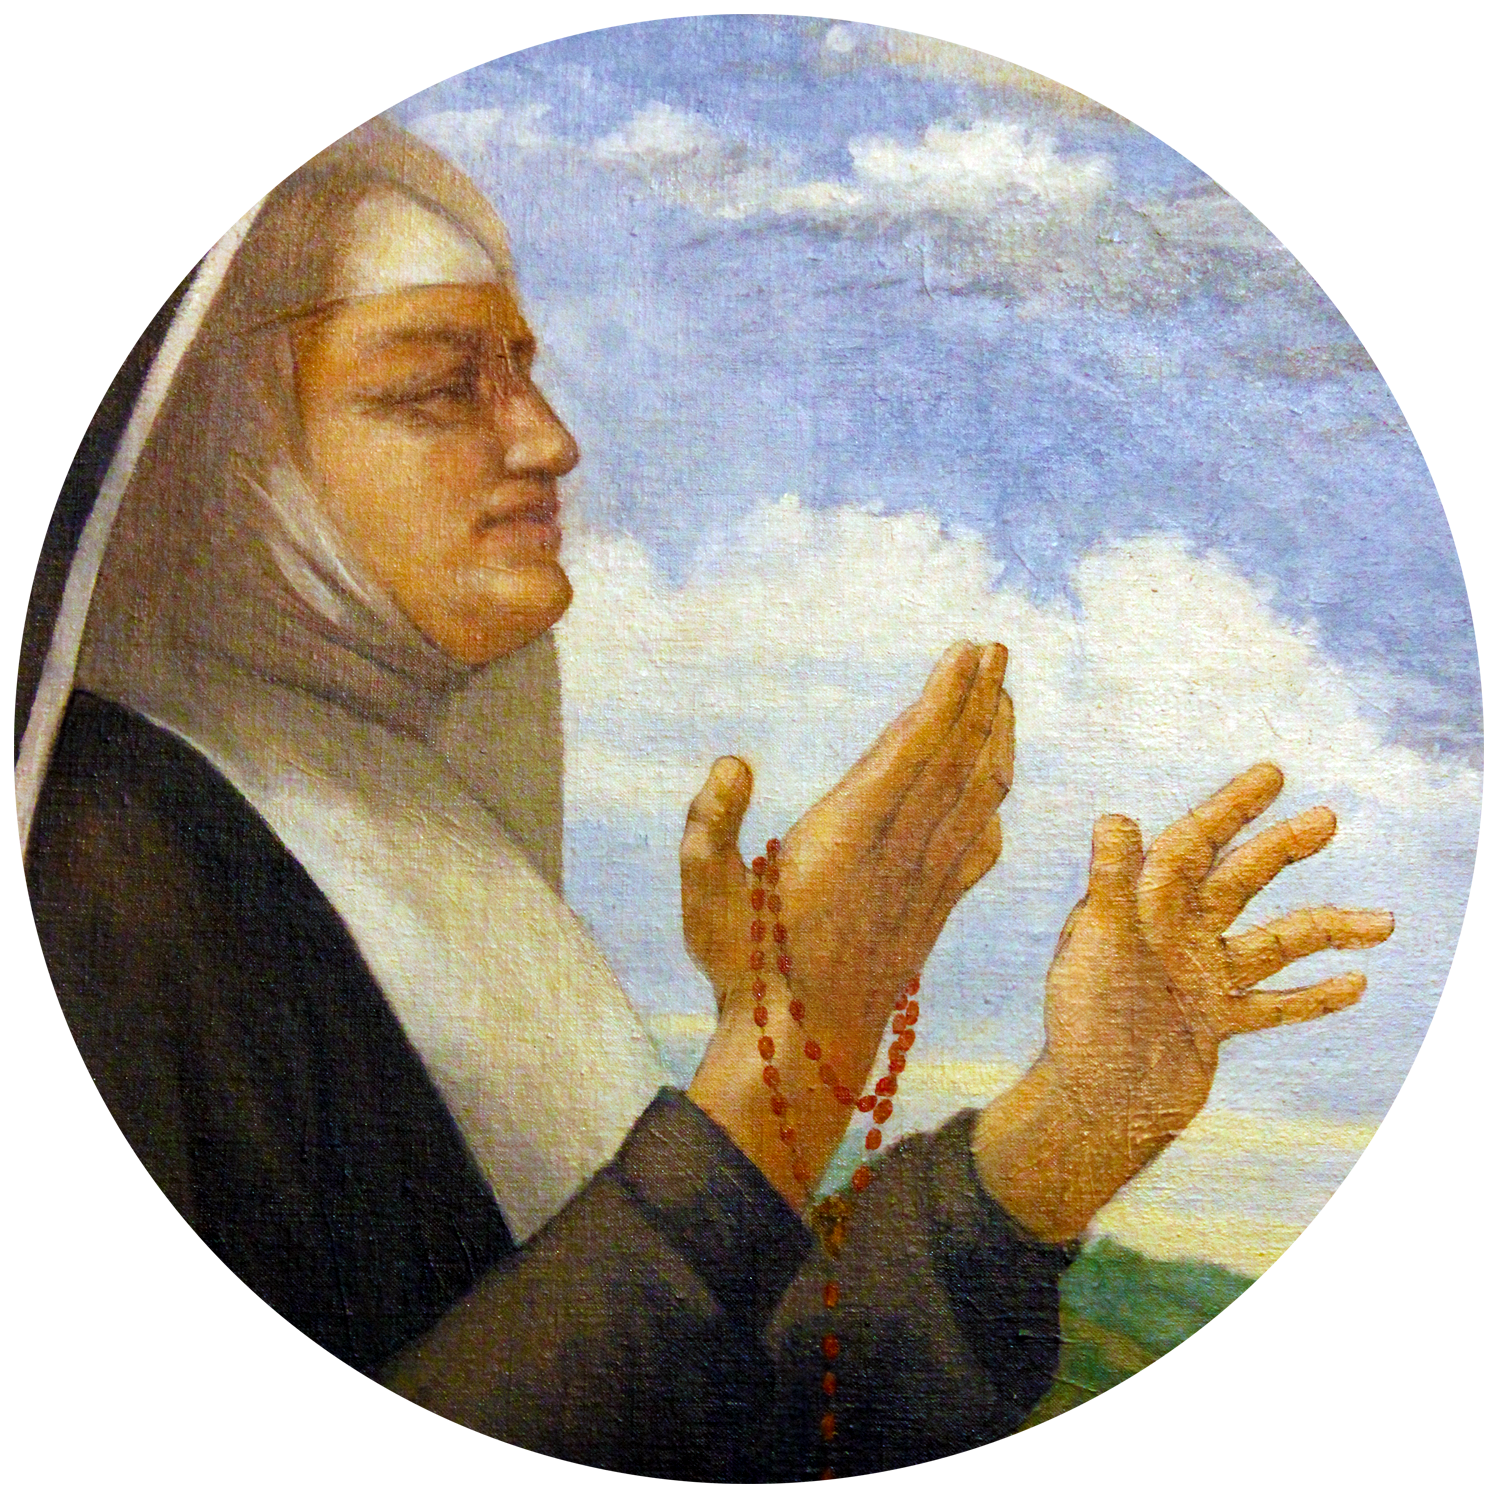 Blessed Maria Theresa Fasce was a dedicated nun who helped transform and revitalize the monastery at Cascia in the early 1900s.